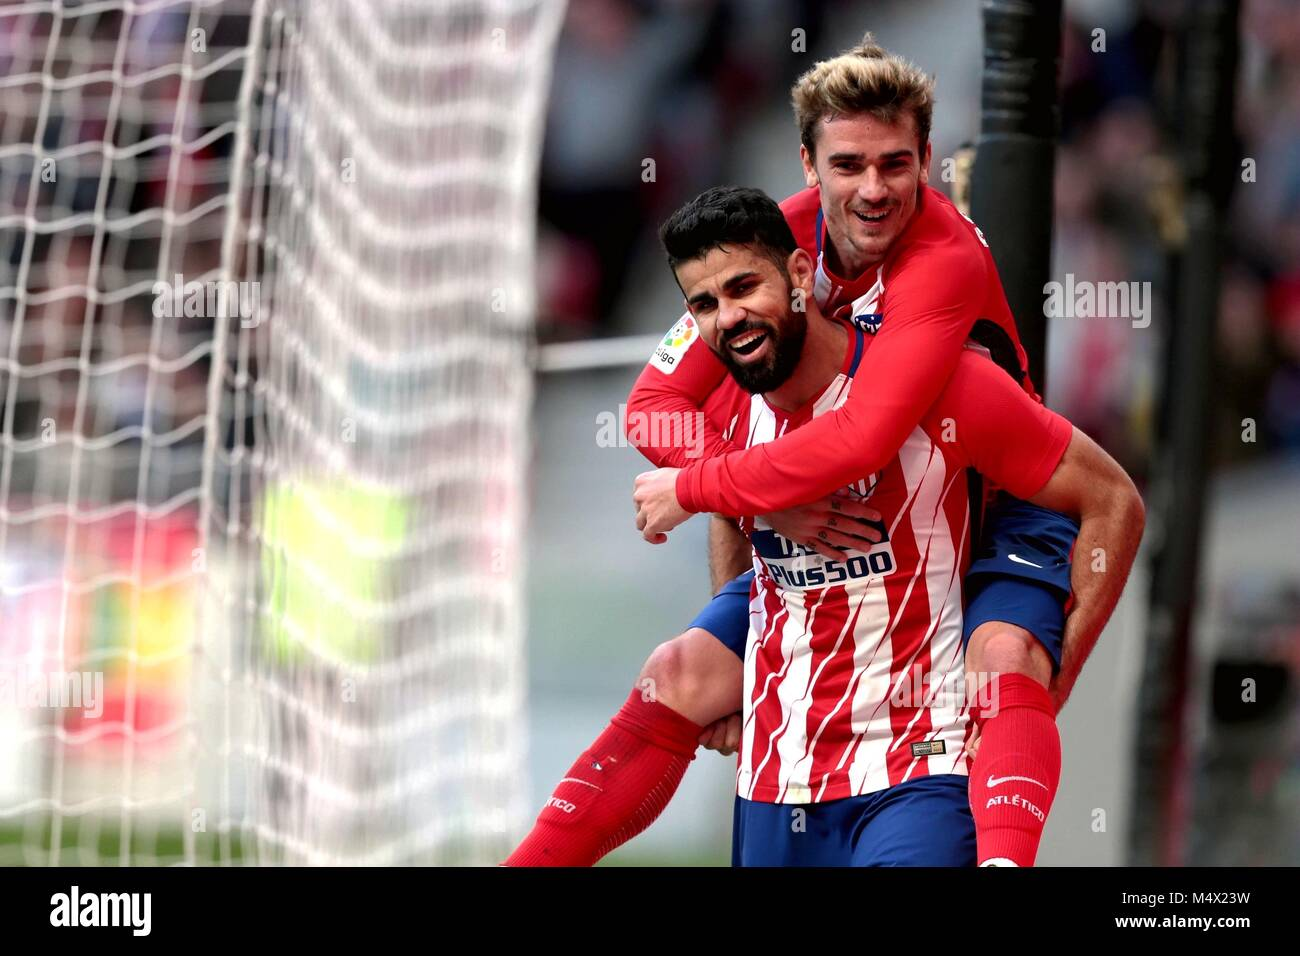 Madrid, Spain. 18th Feb, 2018. Atletico Madrid's Diego Costa (Bottom) celebrates with his teammate Antoine Griezmann - Stock Image